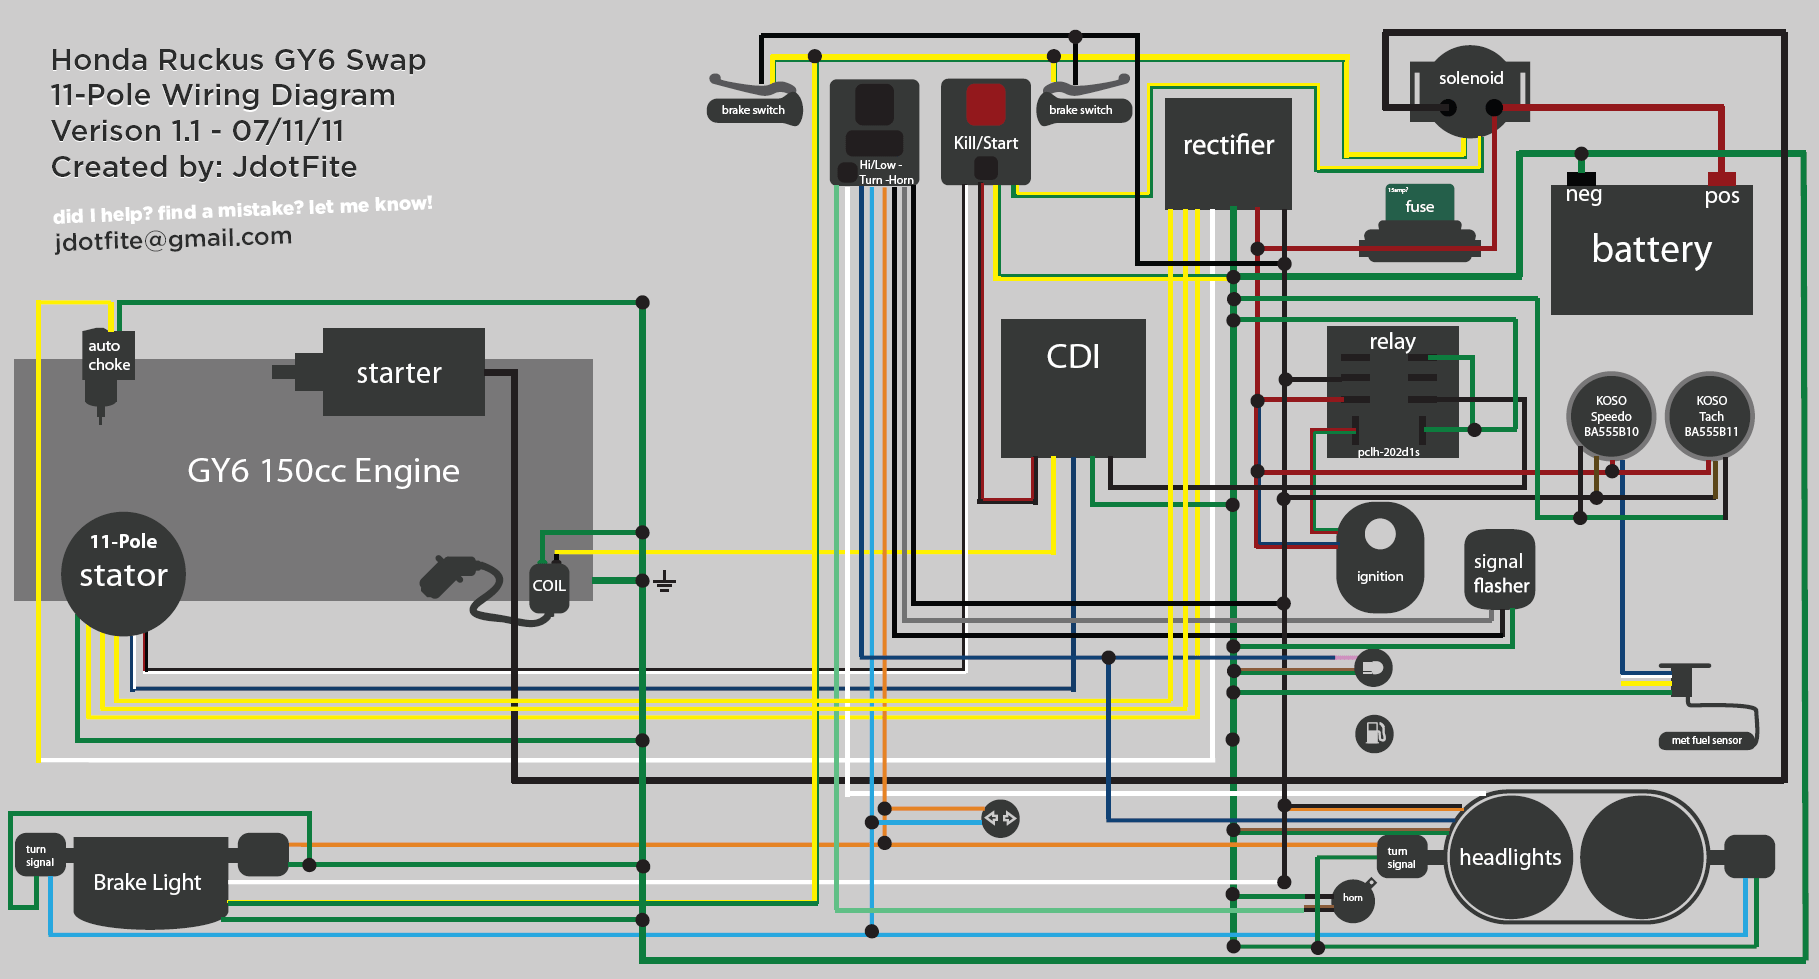 ruckus gy6 wiring diagram gy6 stator wiring gy6 engine wiring \u2022 wiring diagrams j squared co gy6 8 pole stator wiring diagram at bakdesigns.co